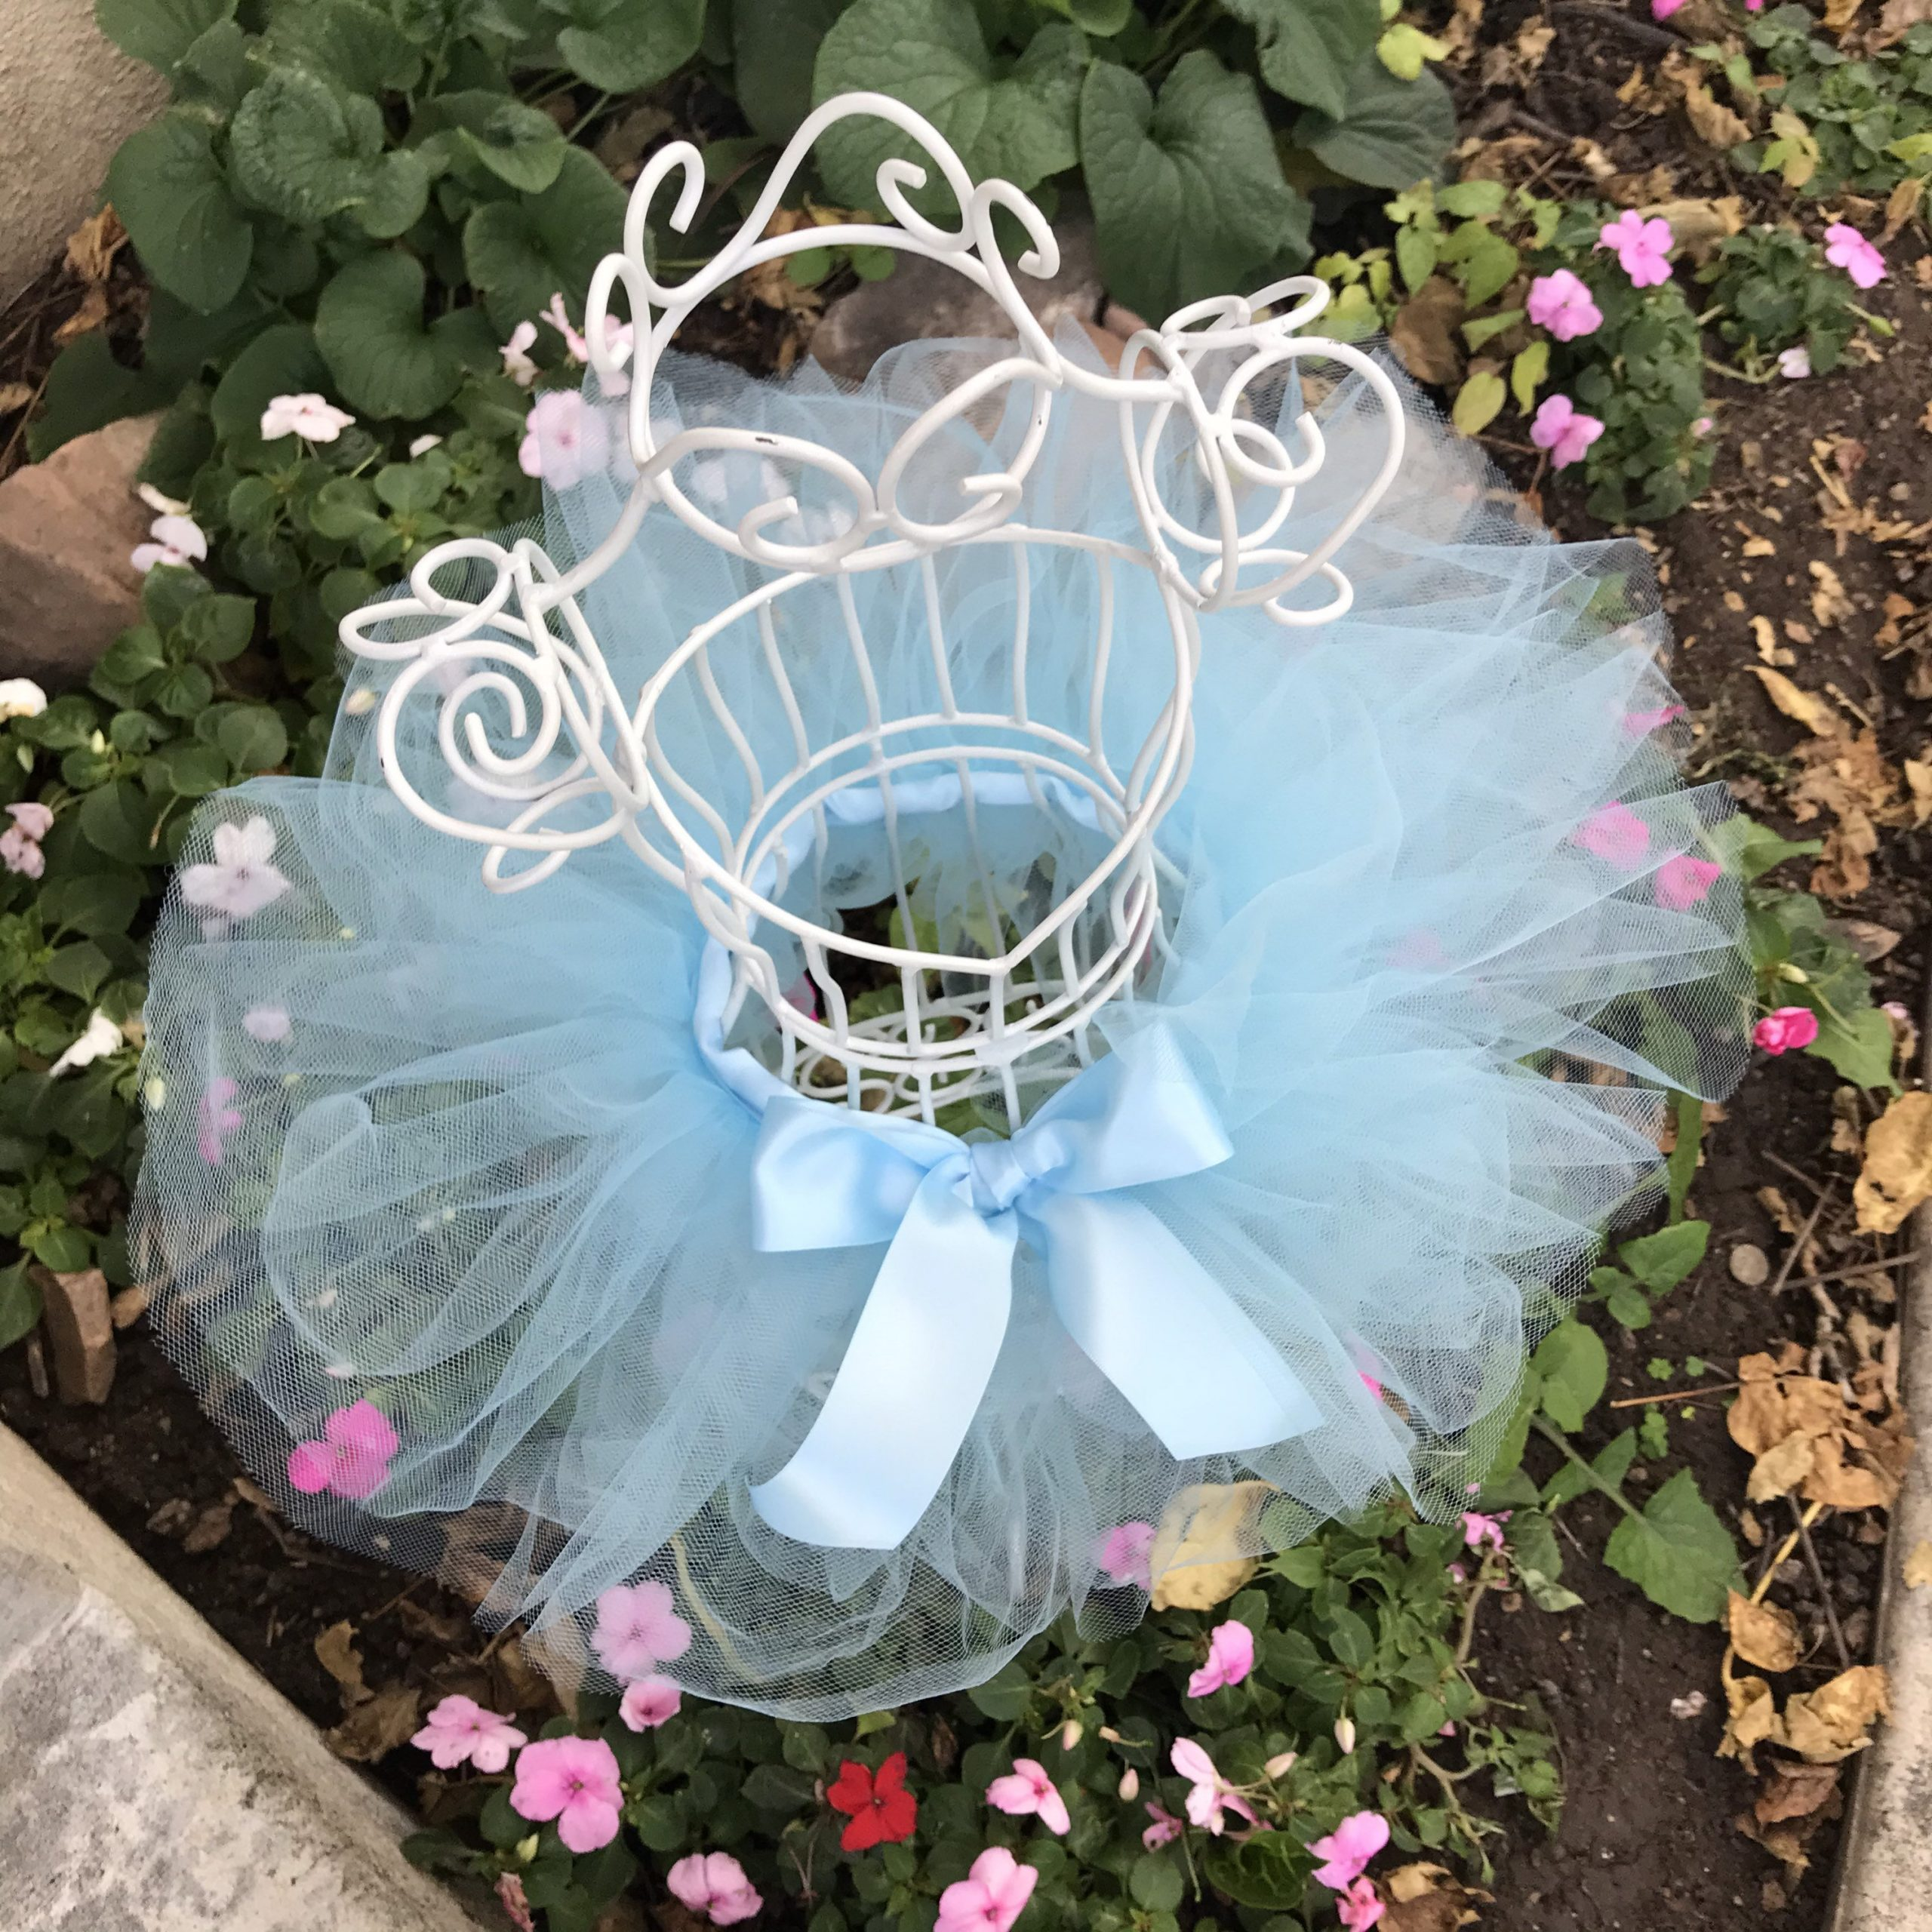 Blue Baby Tutu Girls Toddler Outfit Child Halloween Costume Kids Periwinkle Dress Up Gifts First Birthday Party Cake Smash Photo Shoot Props